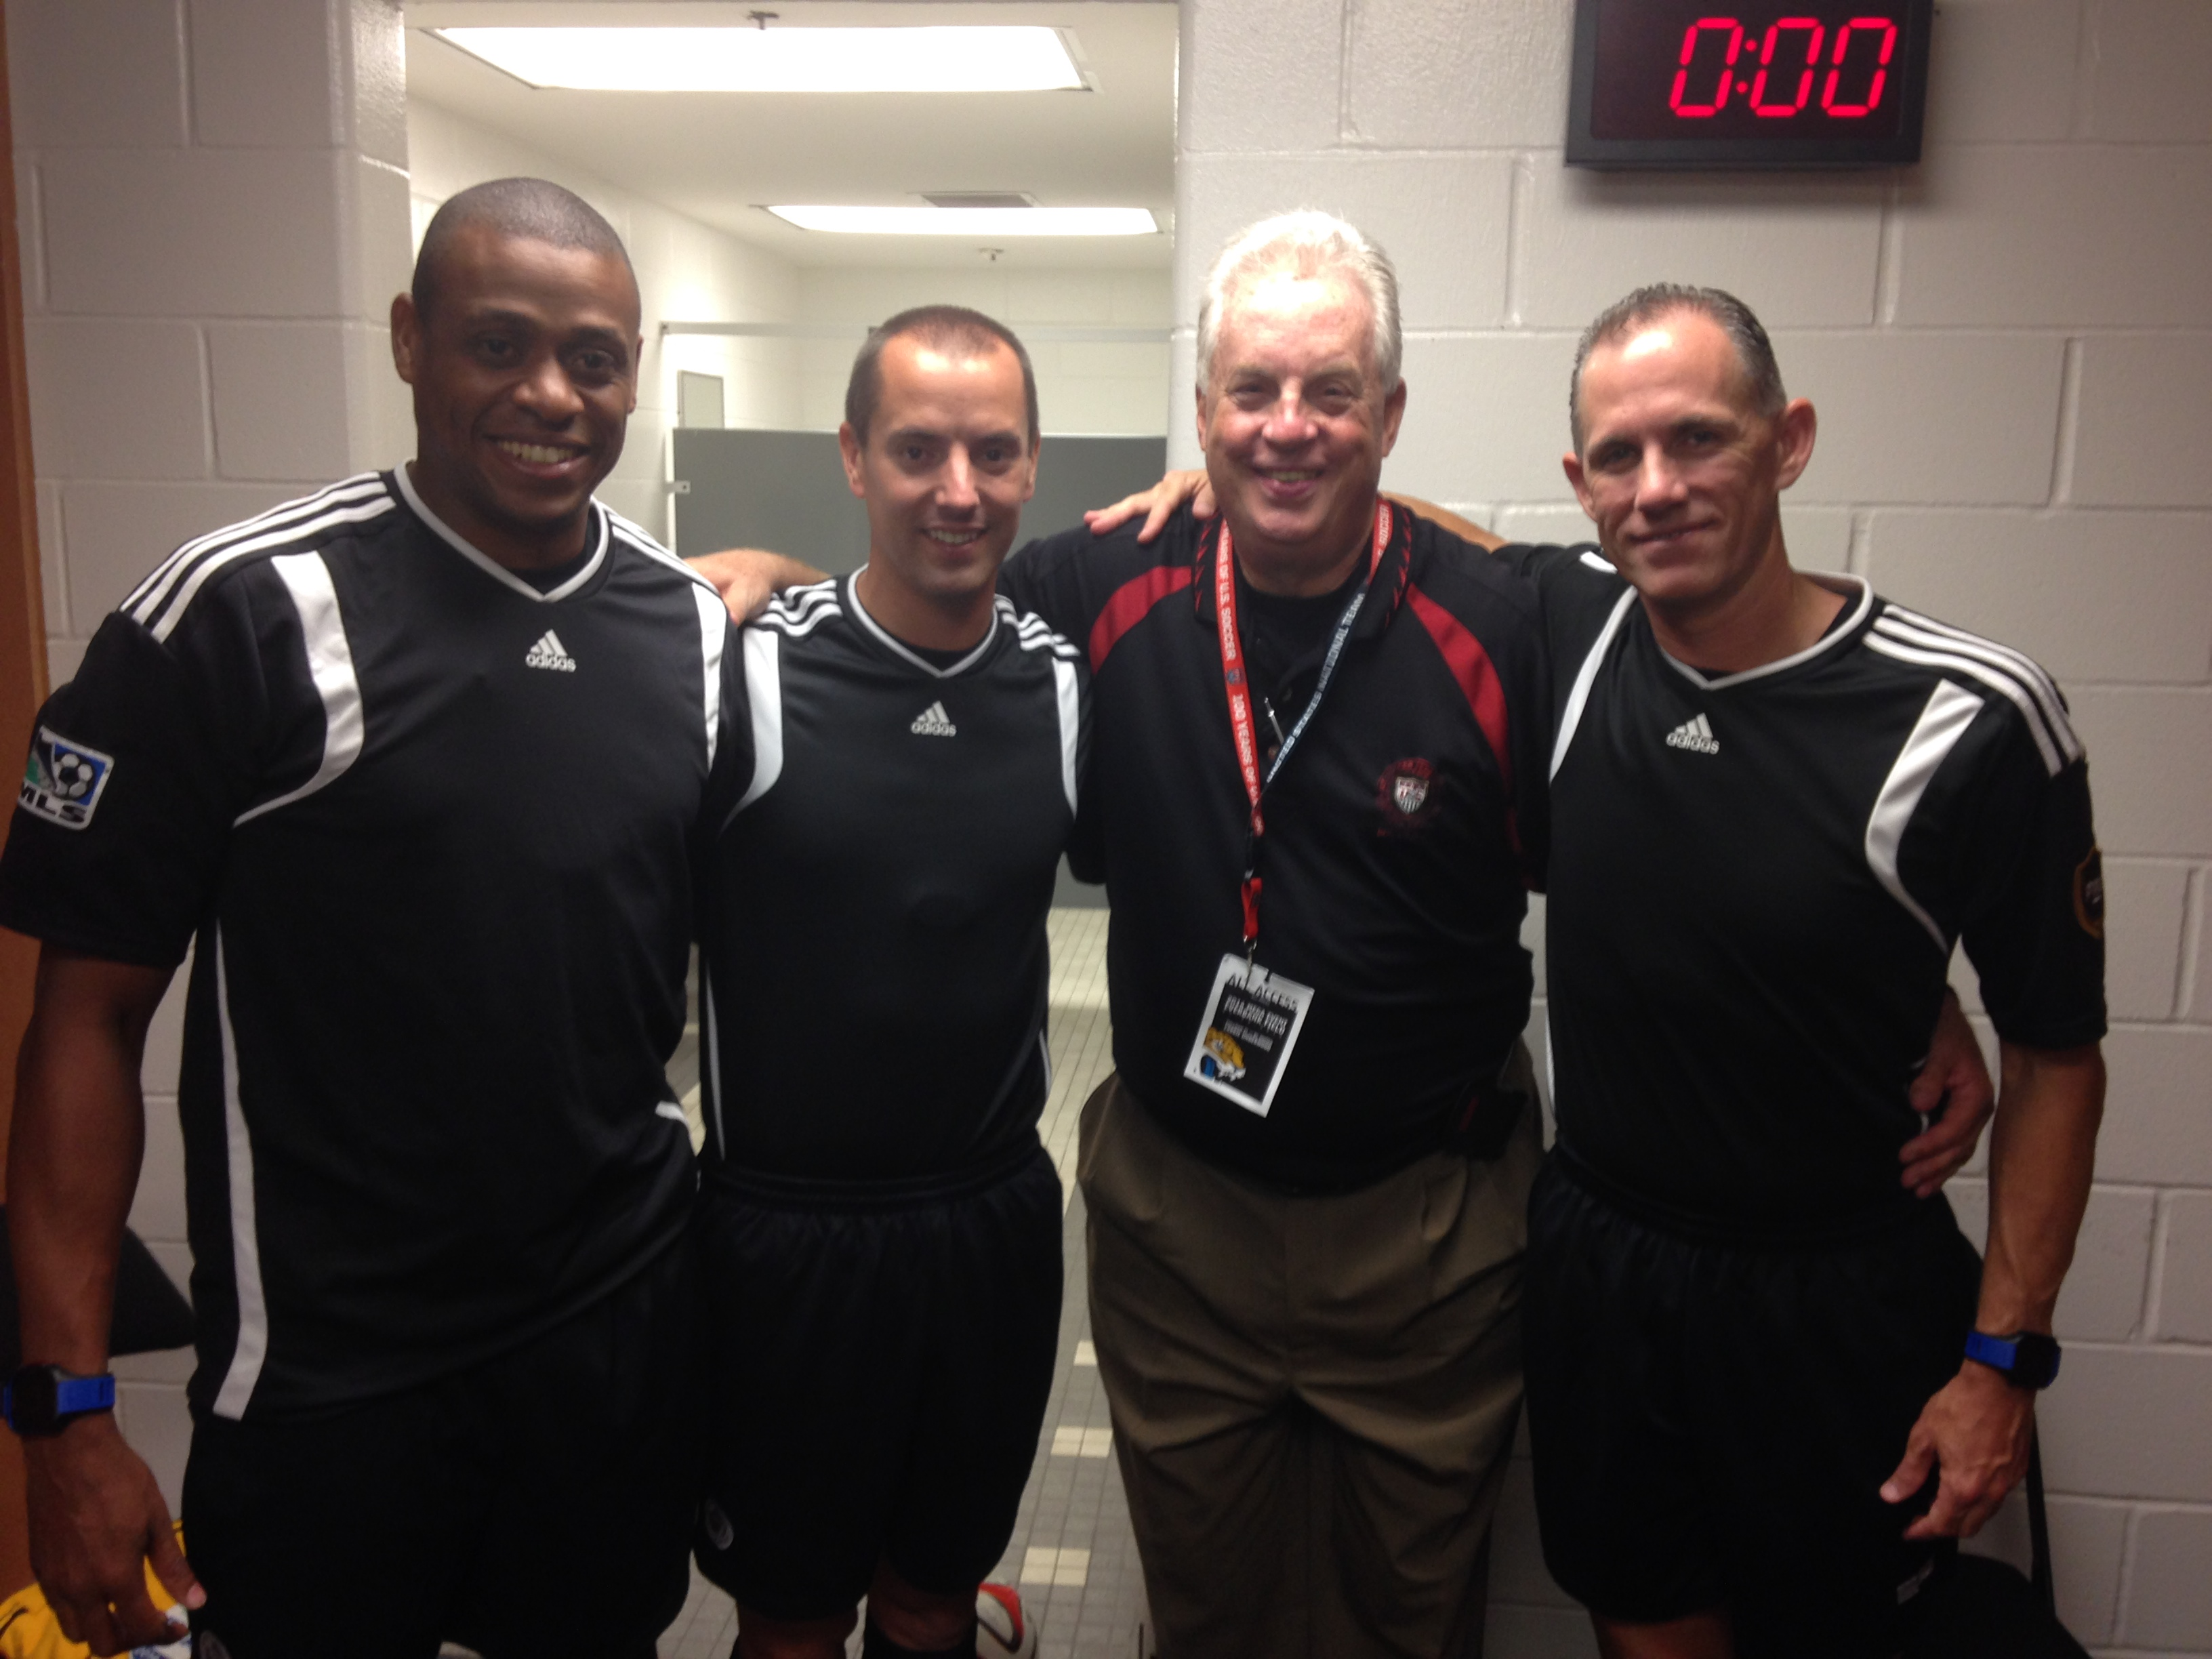 (L-R) Joe Fletcher, Mark Geiger, longtime MLS Referee Liaison Bob Cowhey, and Hurd.